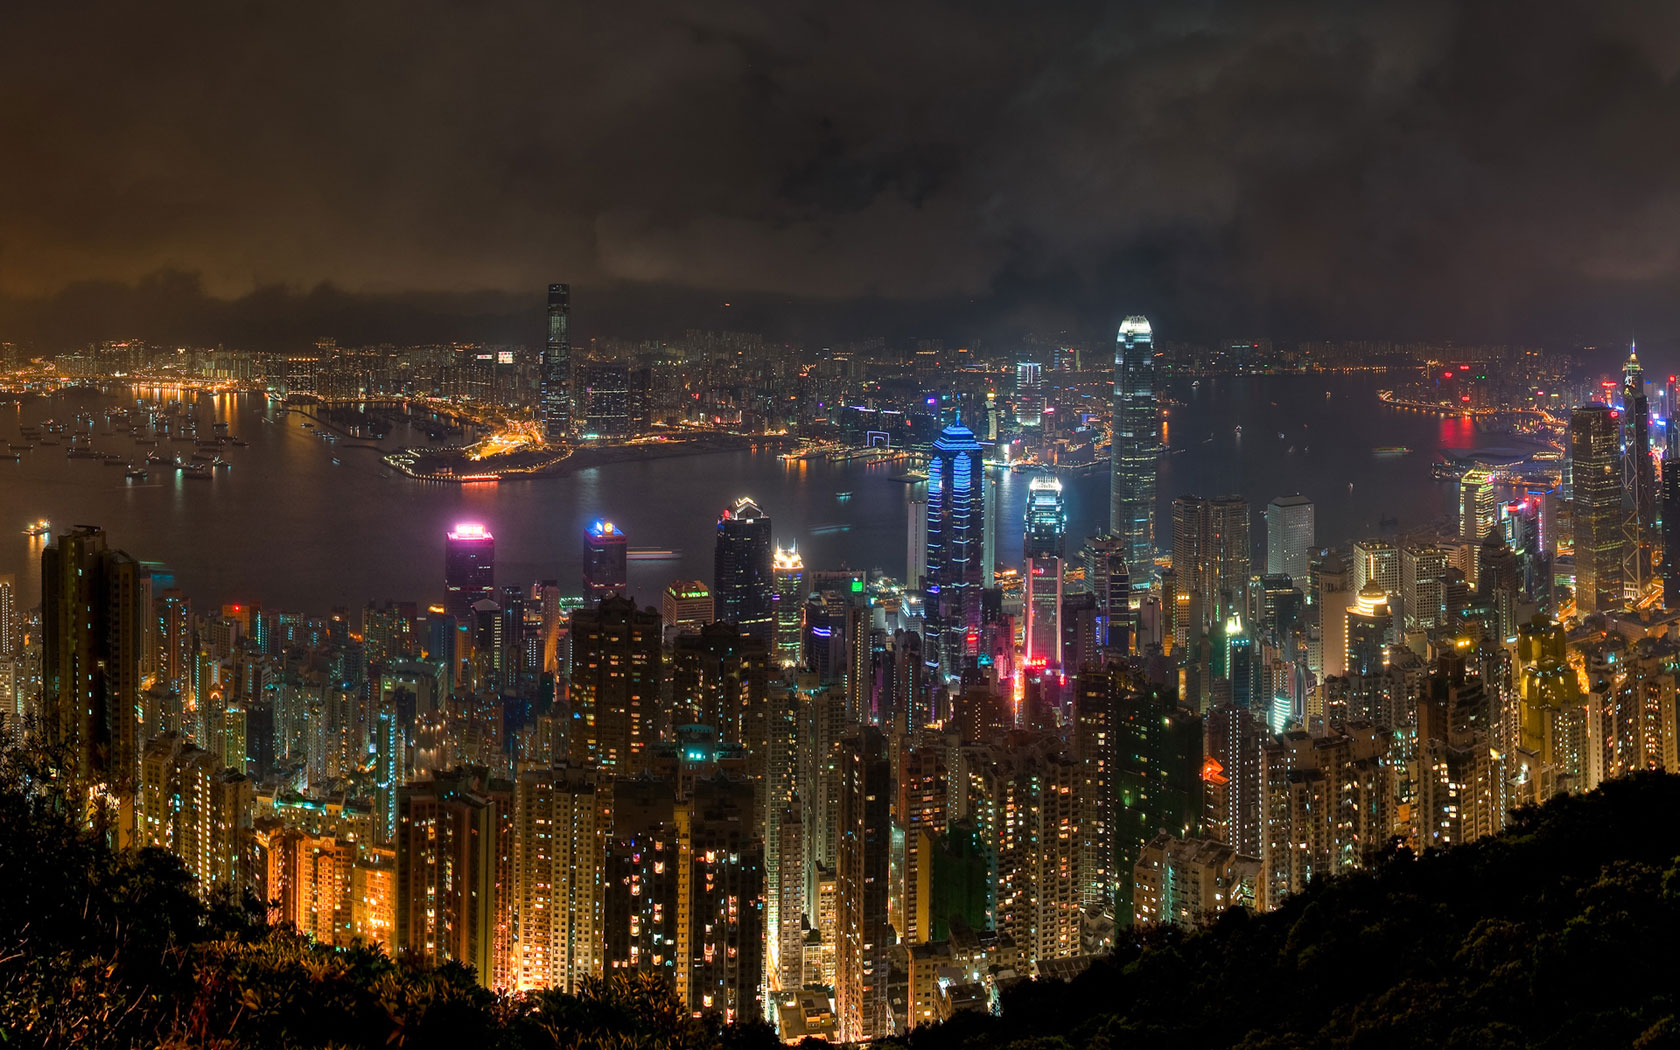 Neighbourhoods of Hong Kong after dark